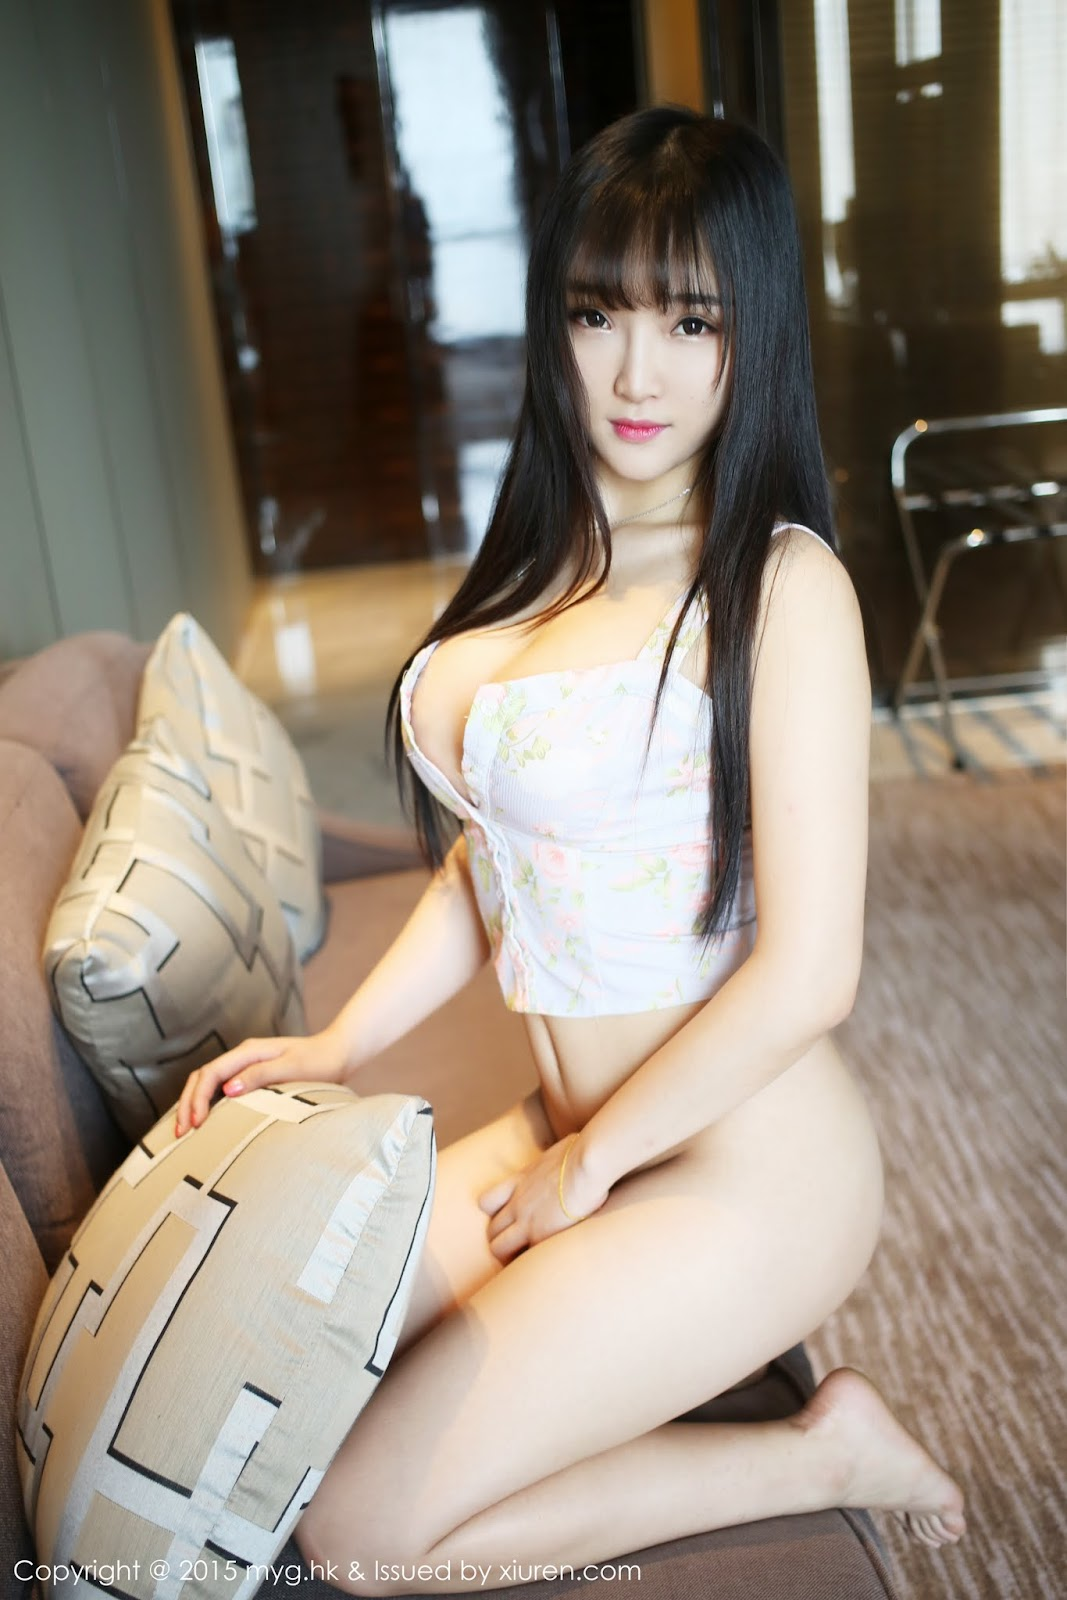 0003 - Sexy Girl Model MYGIRL VOL.118